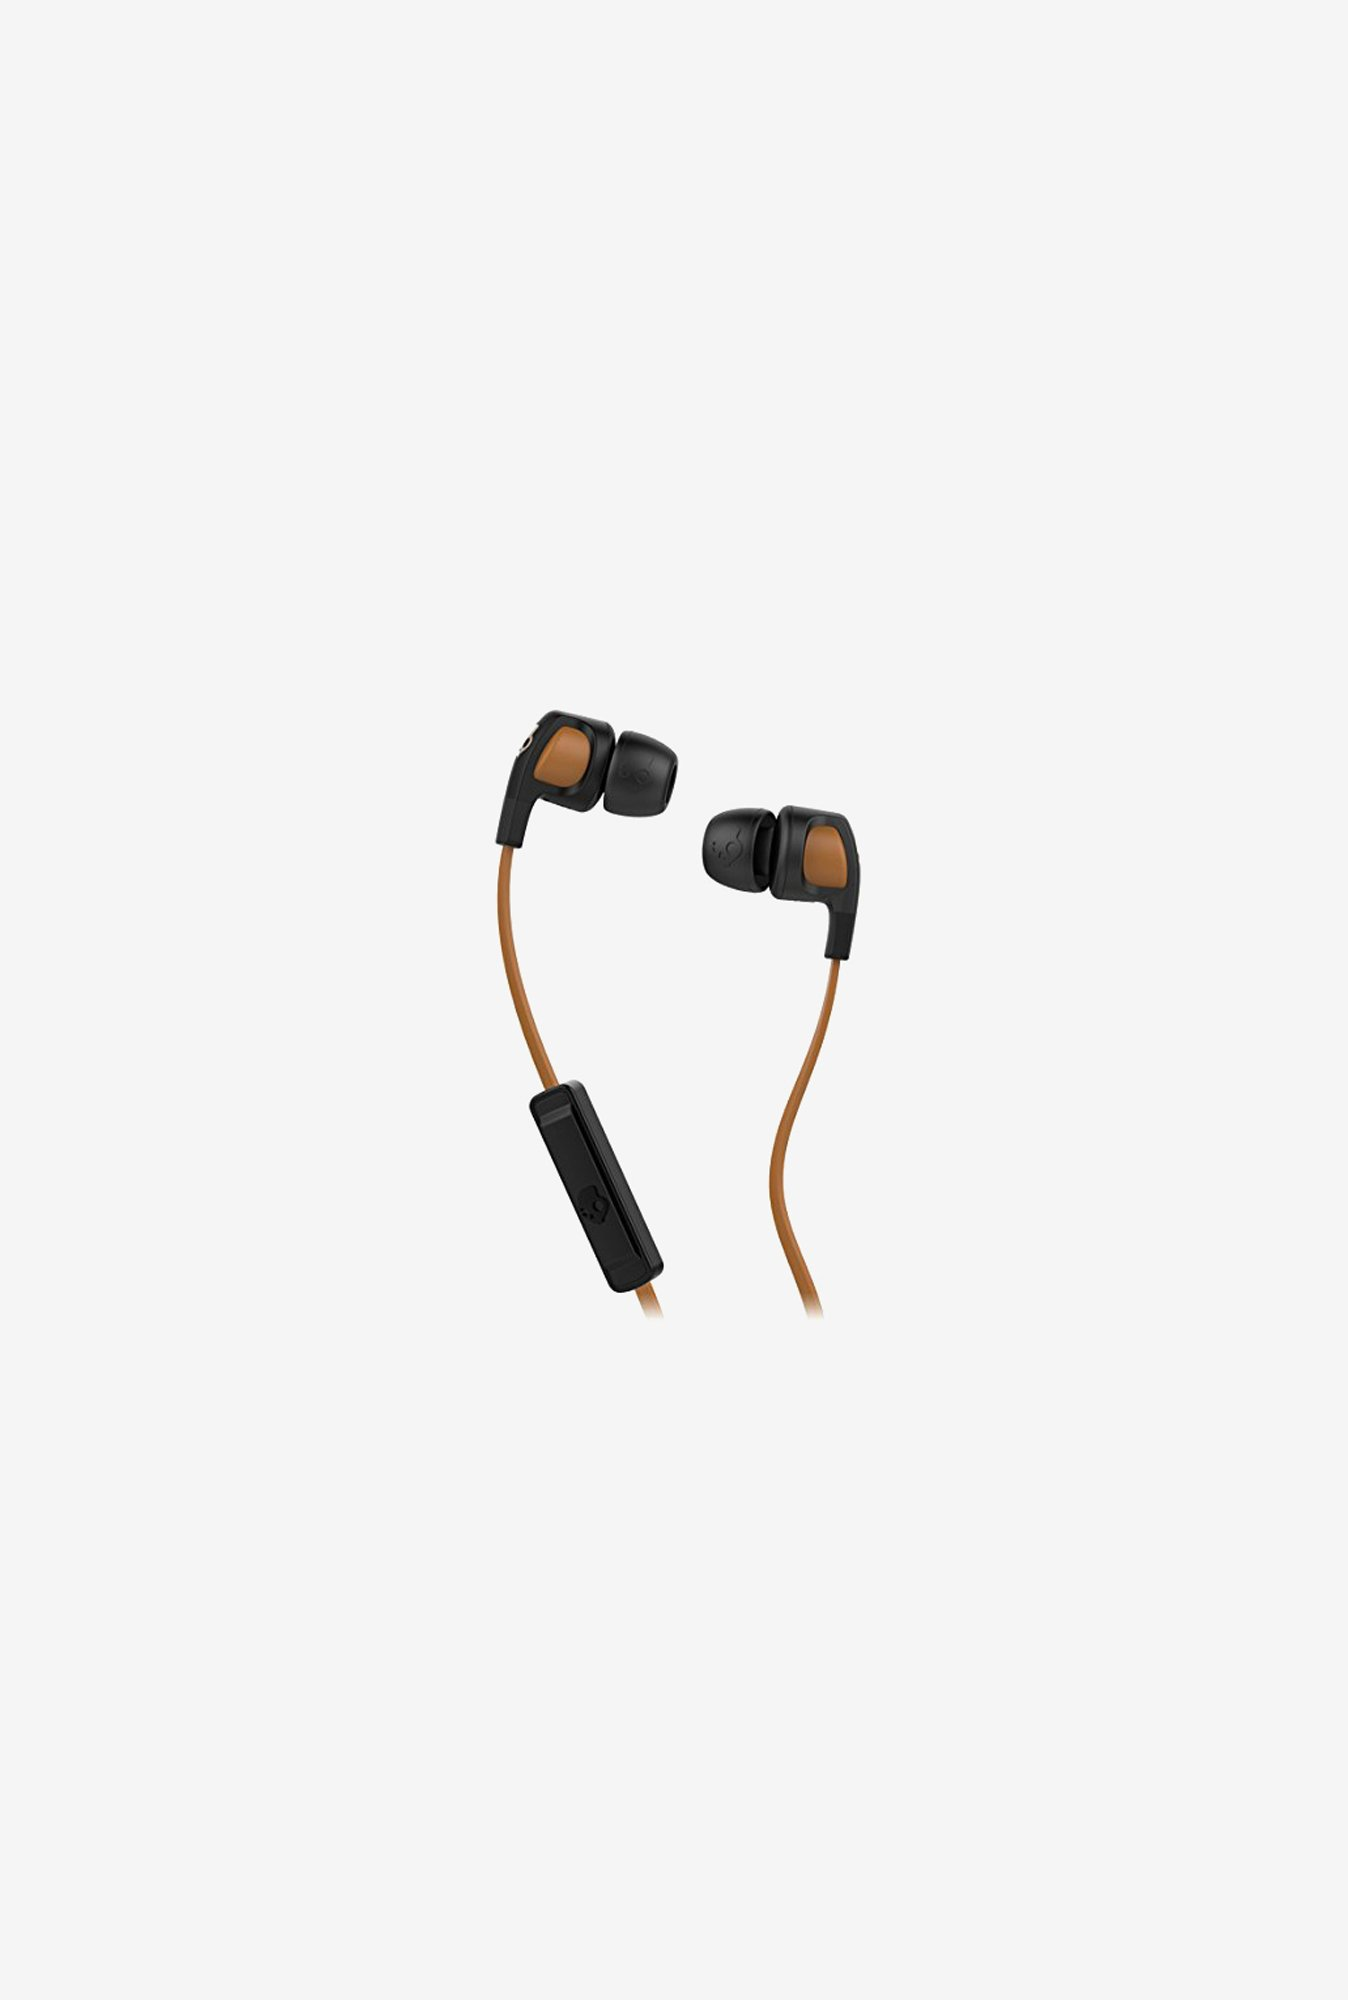 Skullcandy Smokin Buds 2.0 S2PGGY-431 Headphone Tan Black